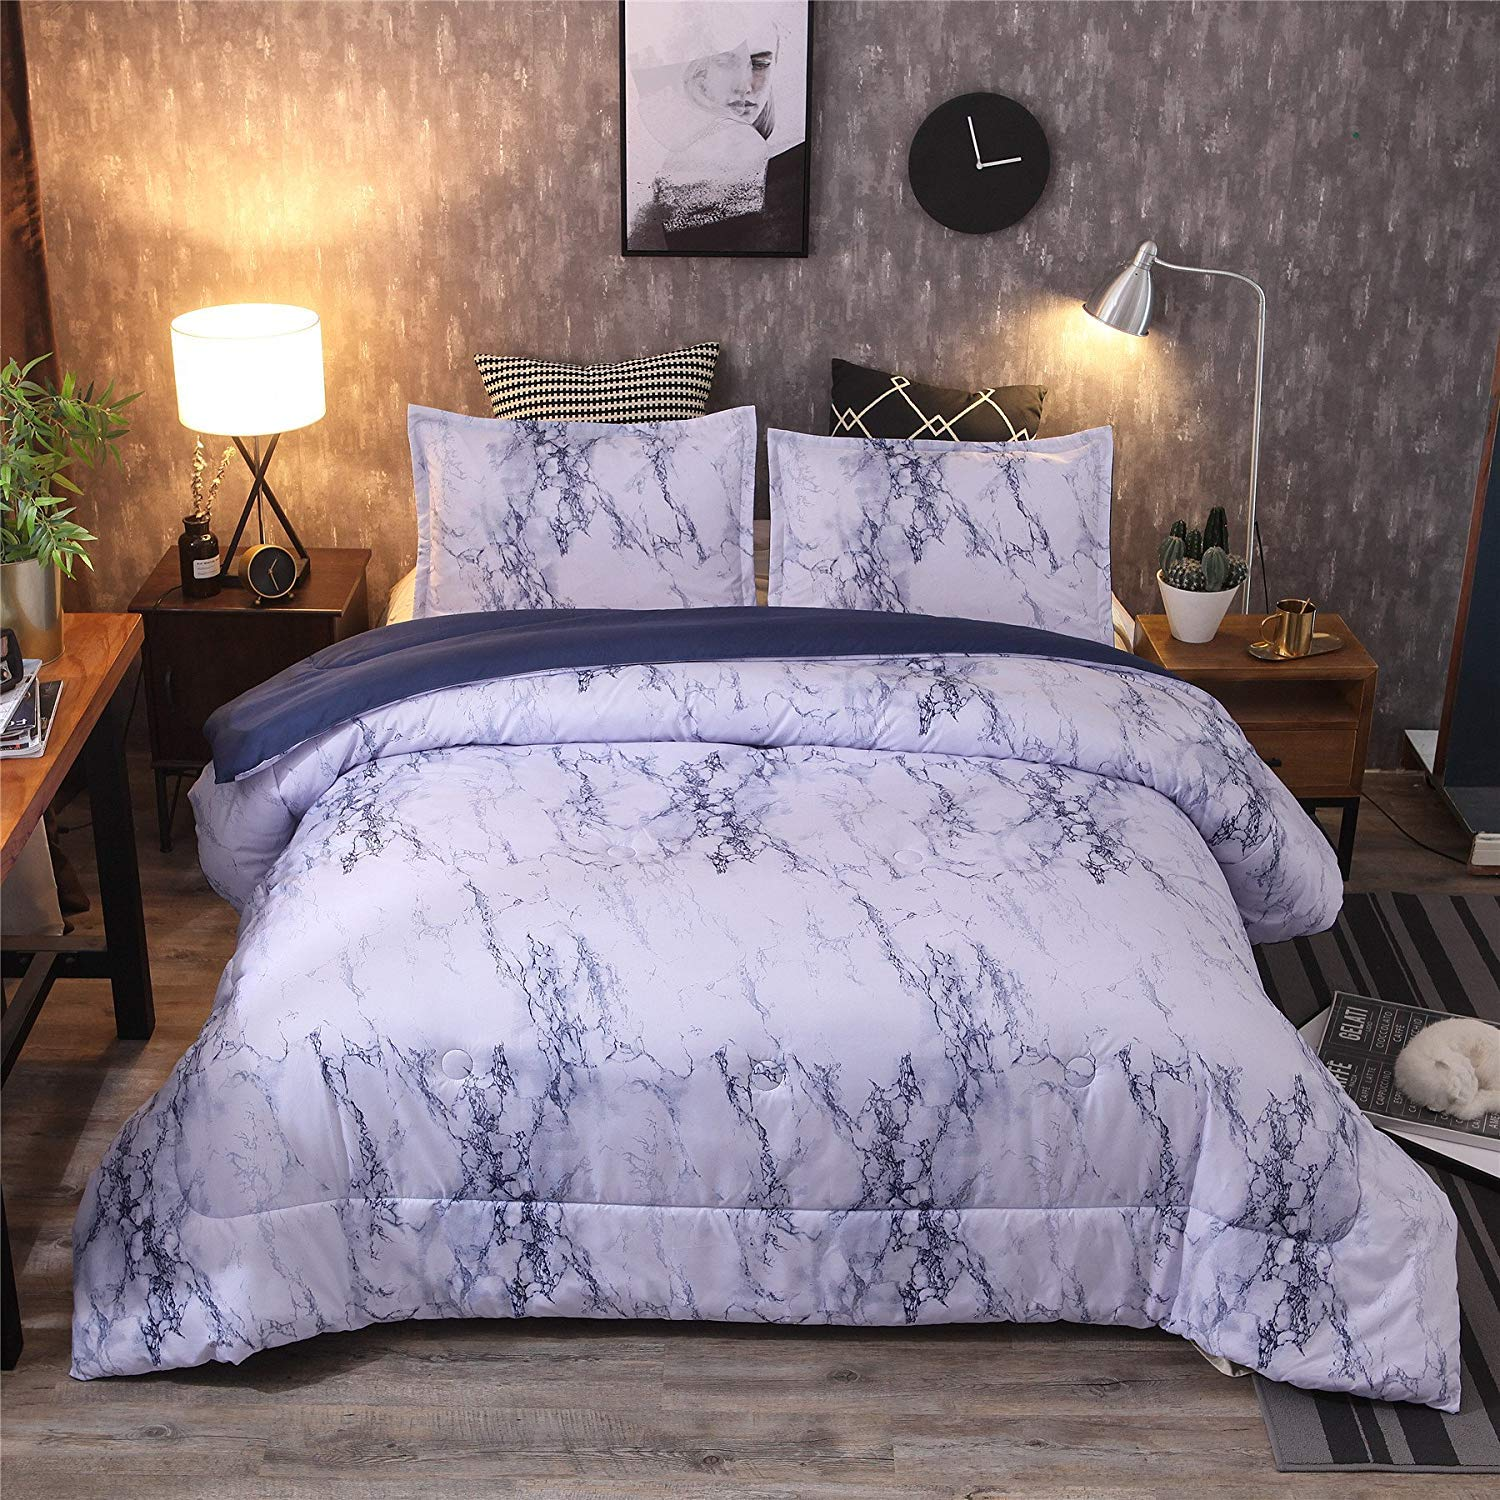 Blue-Marble A Nice Night Marble Design Quilt Comforter Set Bed-in-a-Bag,Queen